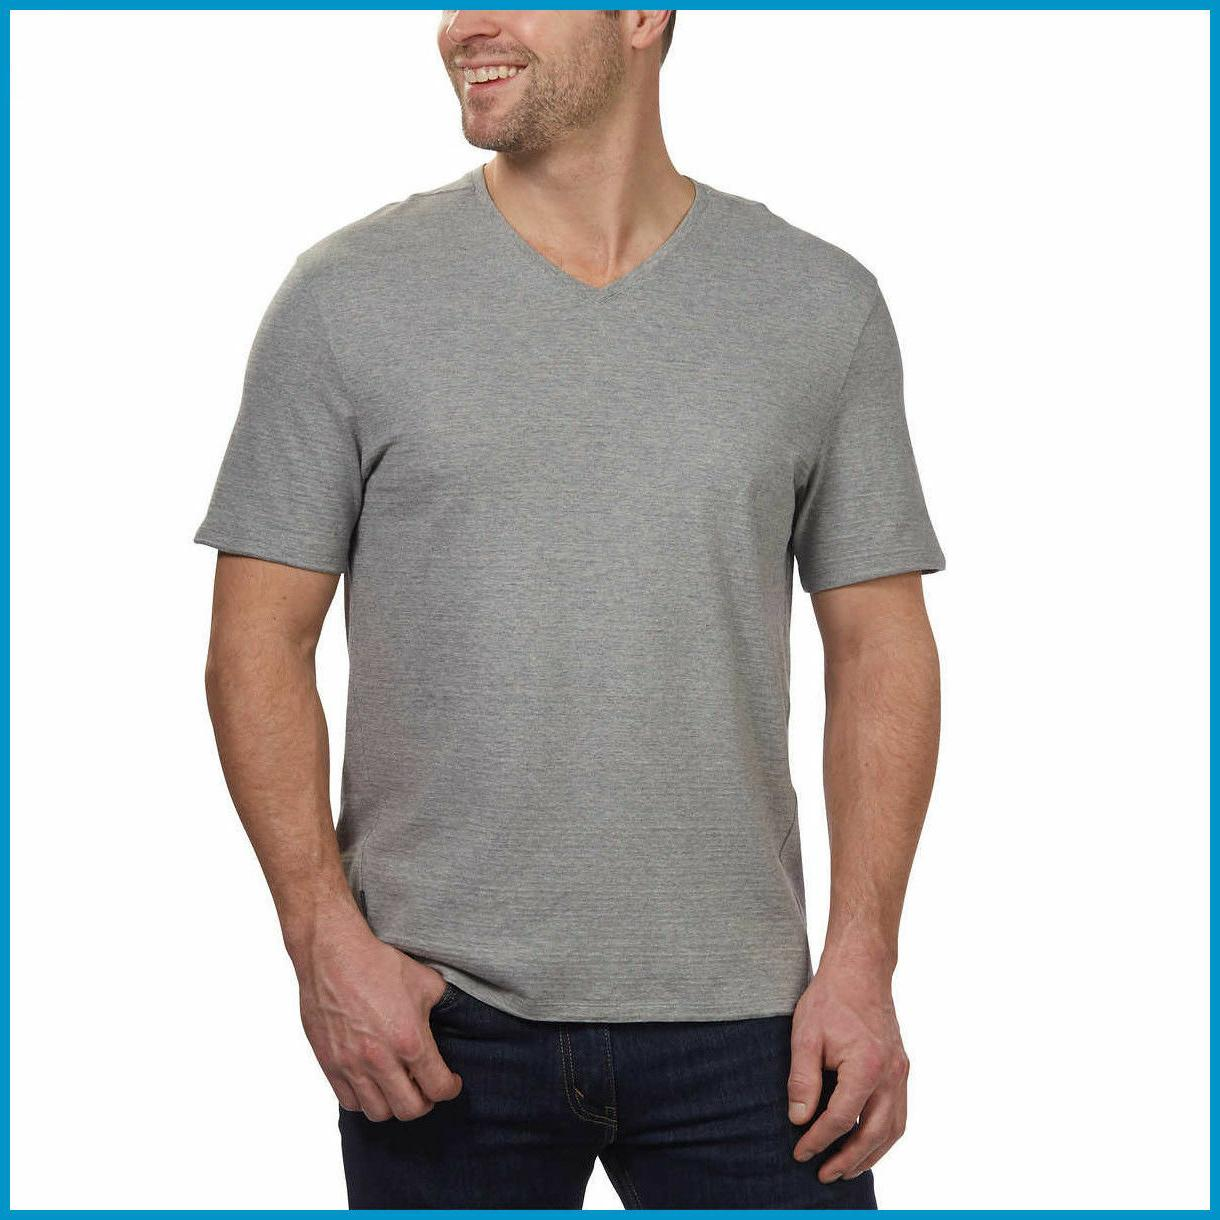 SALE! Calvin Klein Men's Cotton V-Neck Slub T-Shirt Size Color!